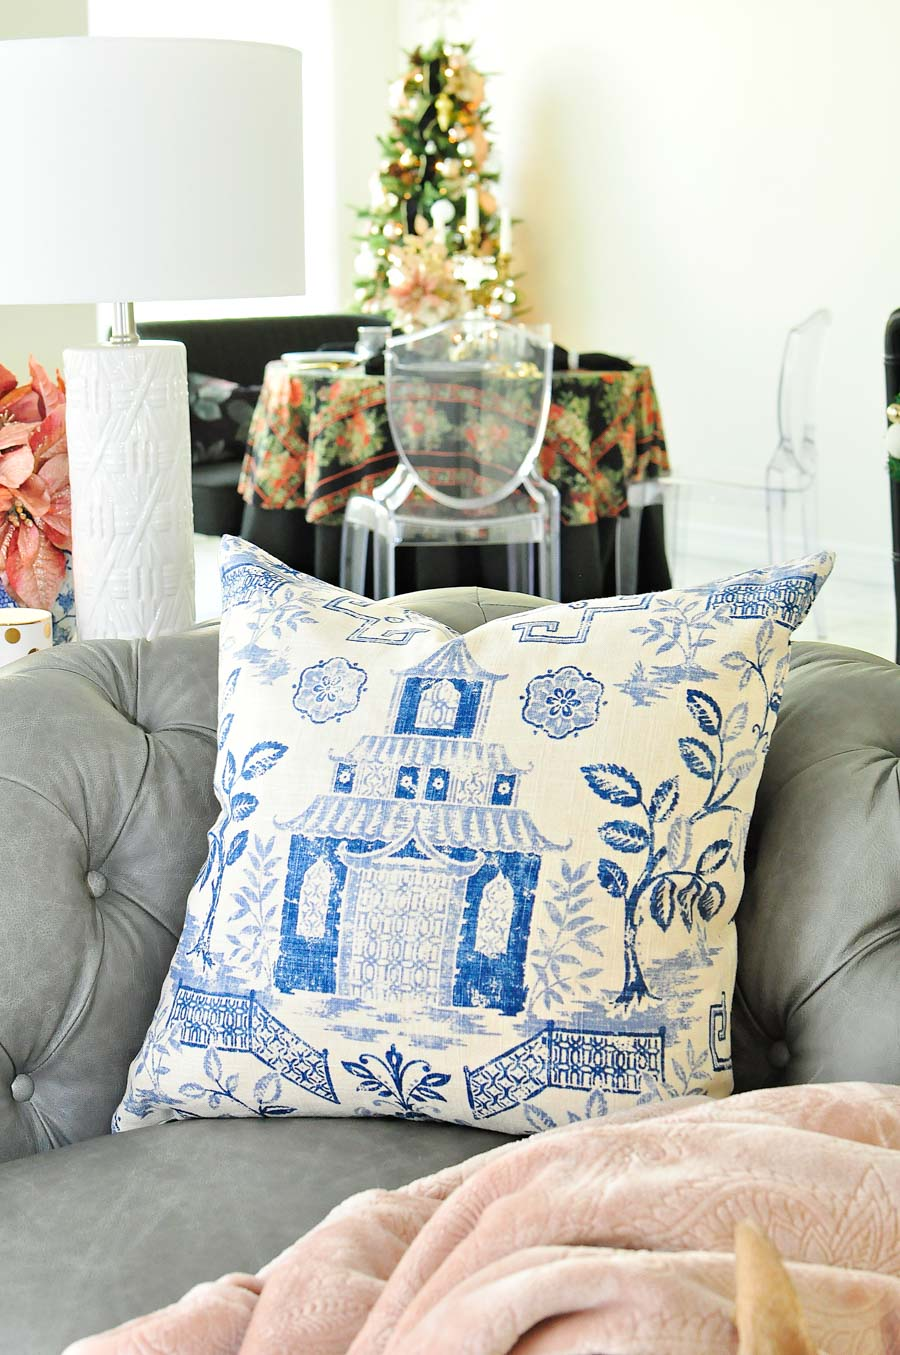 Blue and beige chinoiserie pagoda custom throw pillow cover from Amazon Handmade.